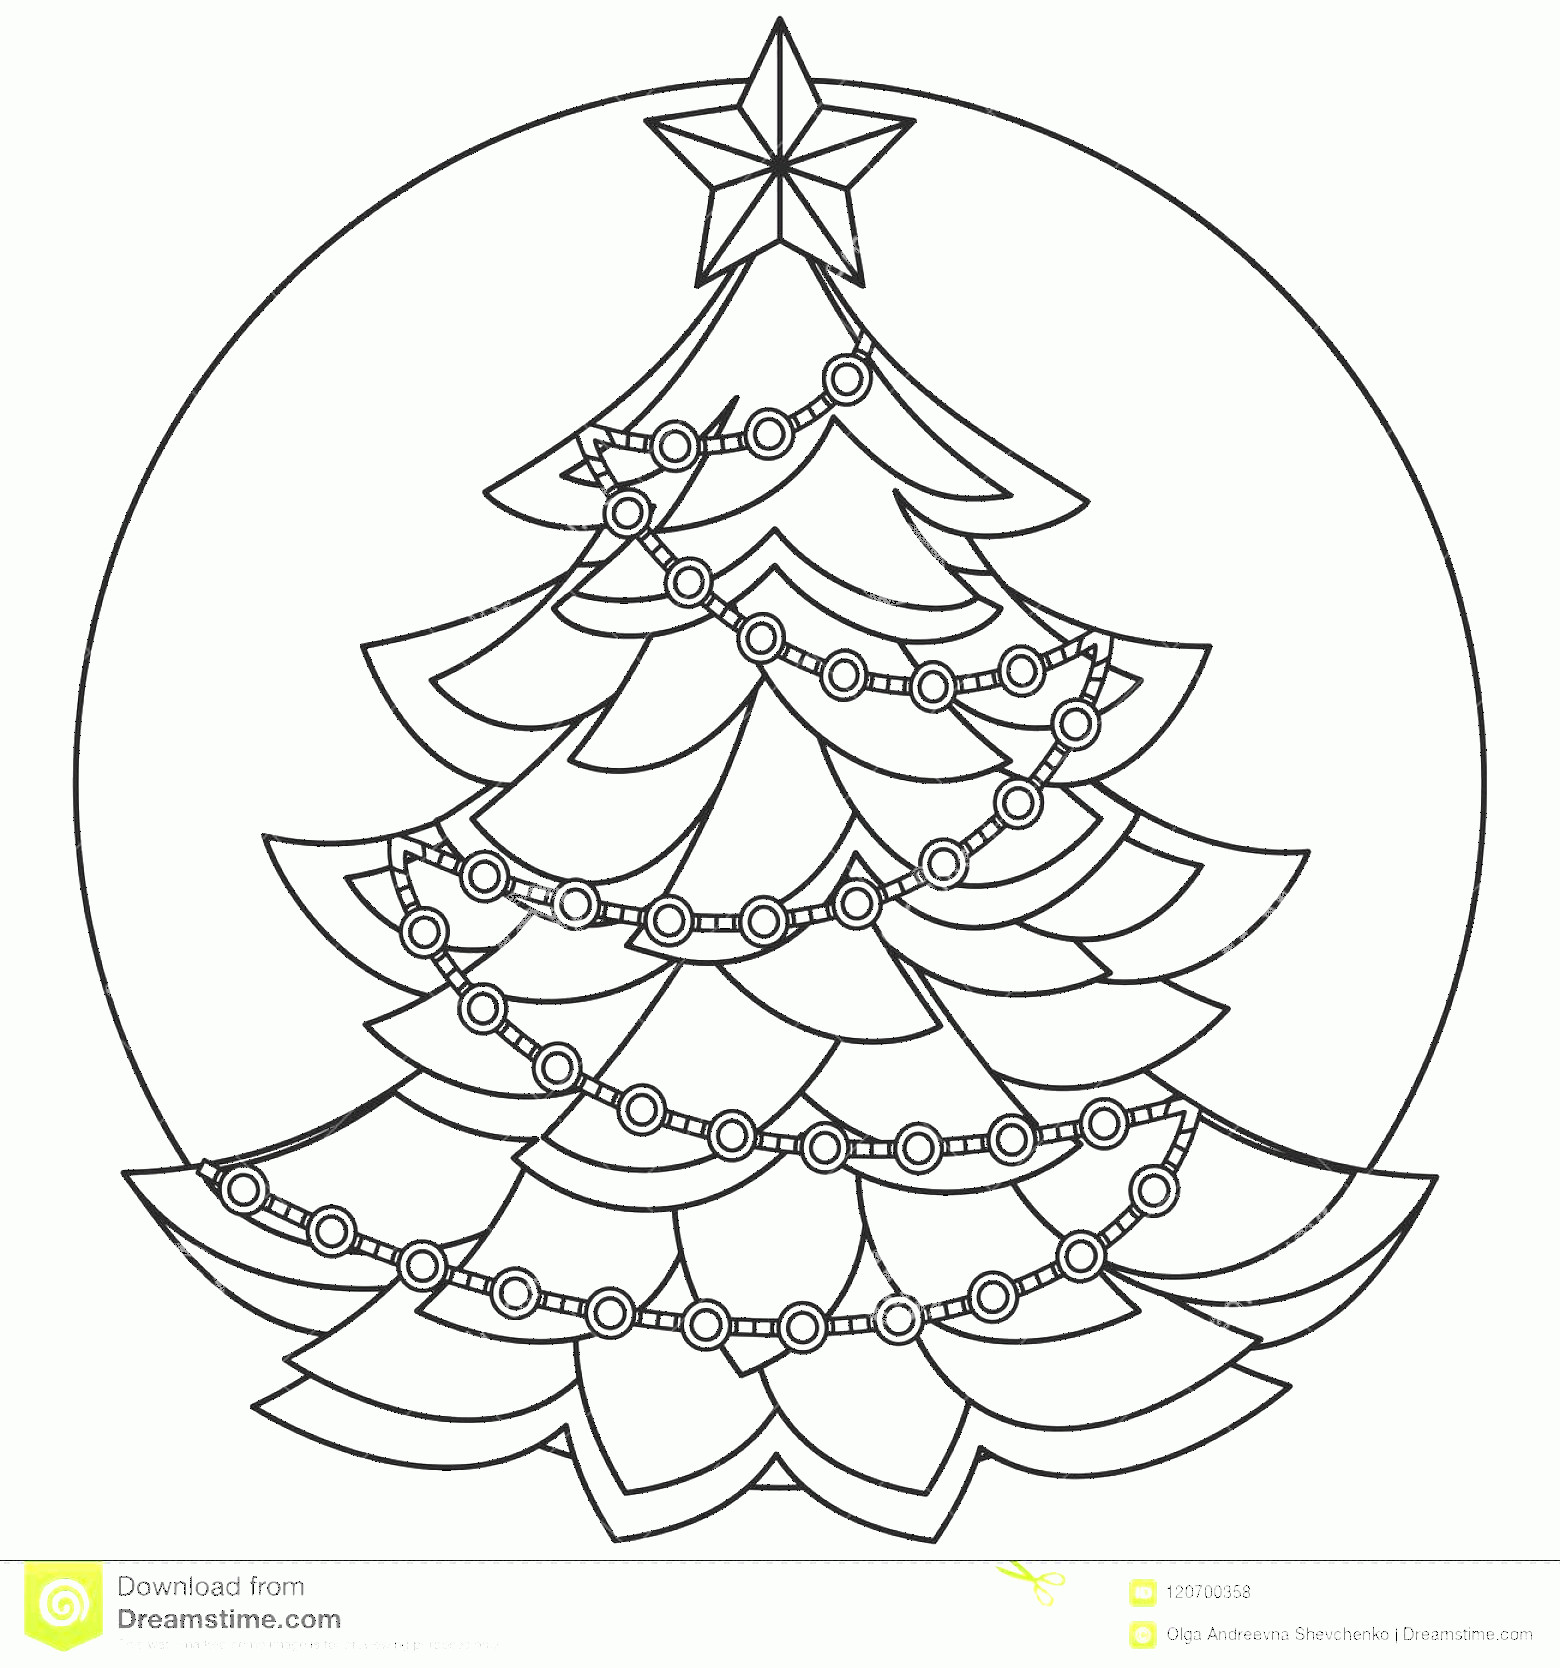 Black And White Christmas Ornament Vector Art: Line Art Black White Christmas Tree Line Art Black White Christmas Tree Coloring Book Page Adults Kids Holiday Image